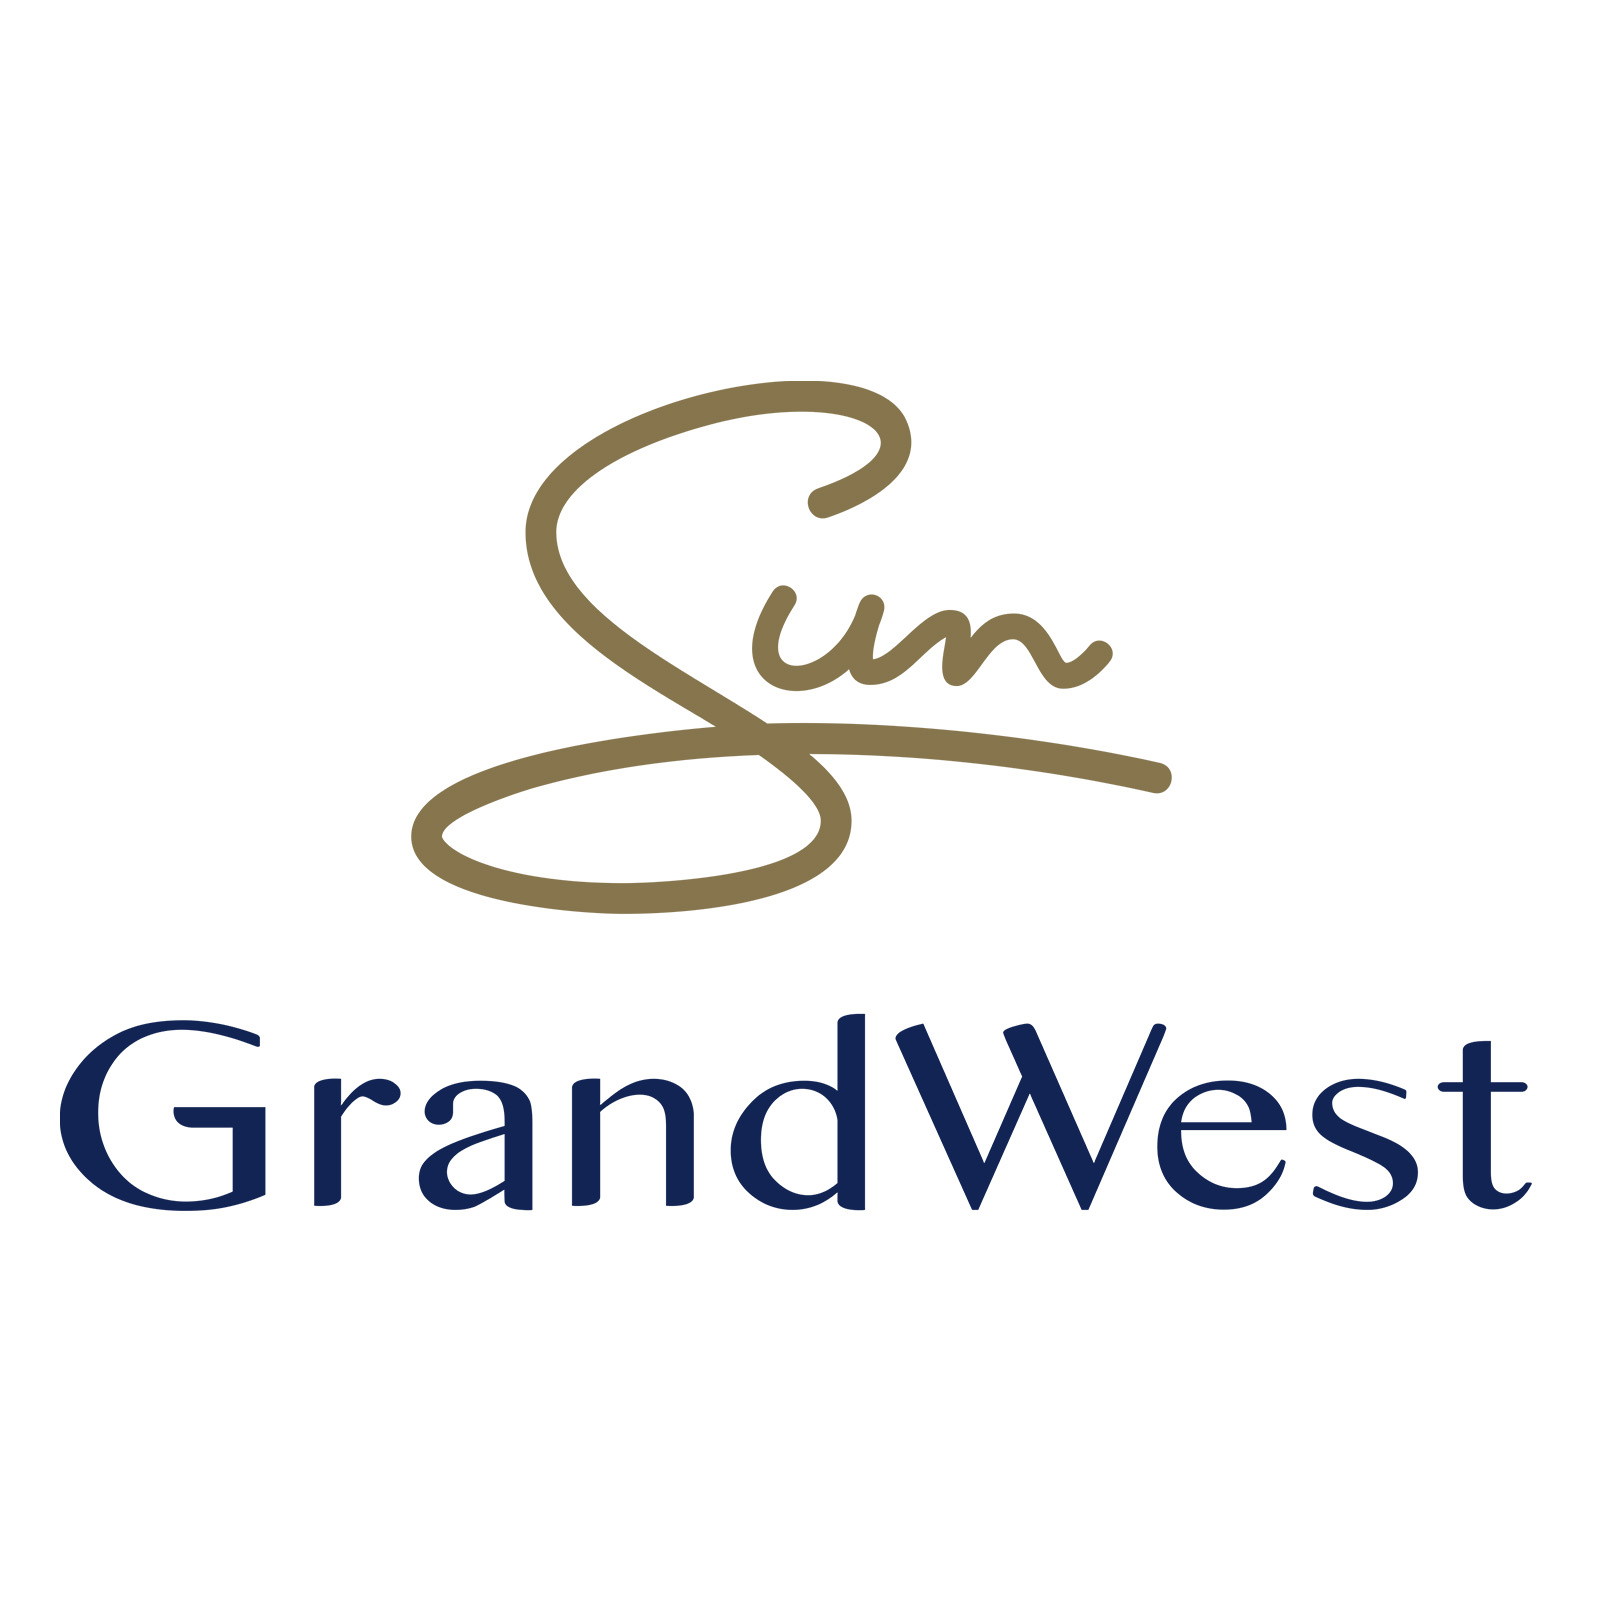 GrandWest Casino and Entertainment World logo for Realise A Dream competition to support local entrepreneurs